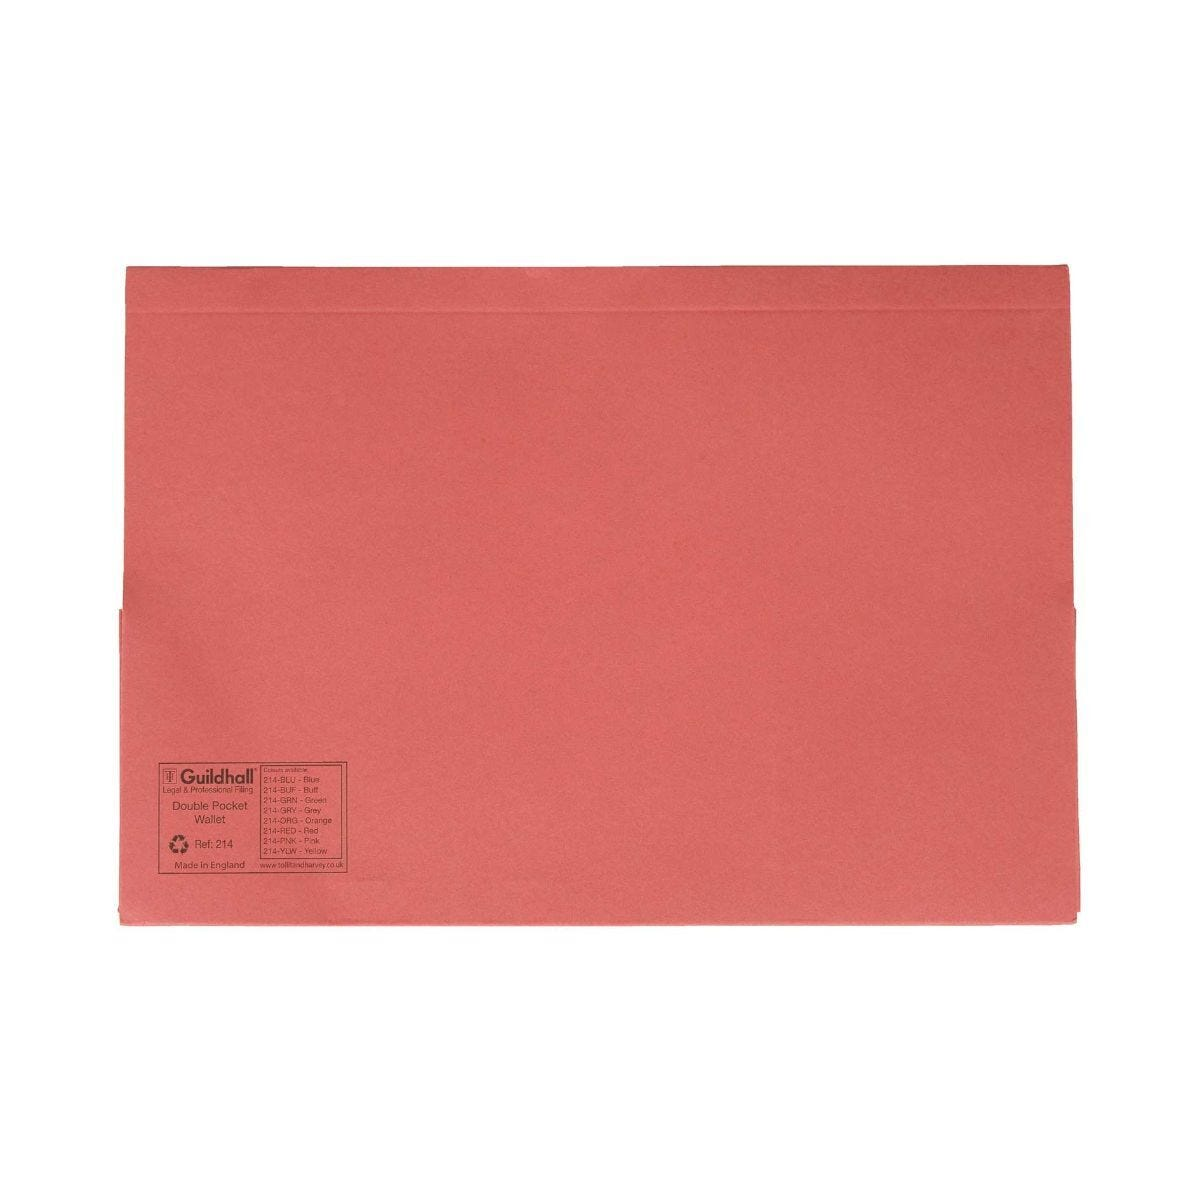 Guildhall Double Pocket Legal Wallets Foolscap 315gsm Pack of 25 Red